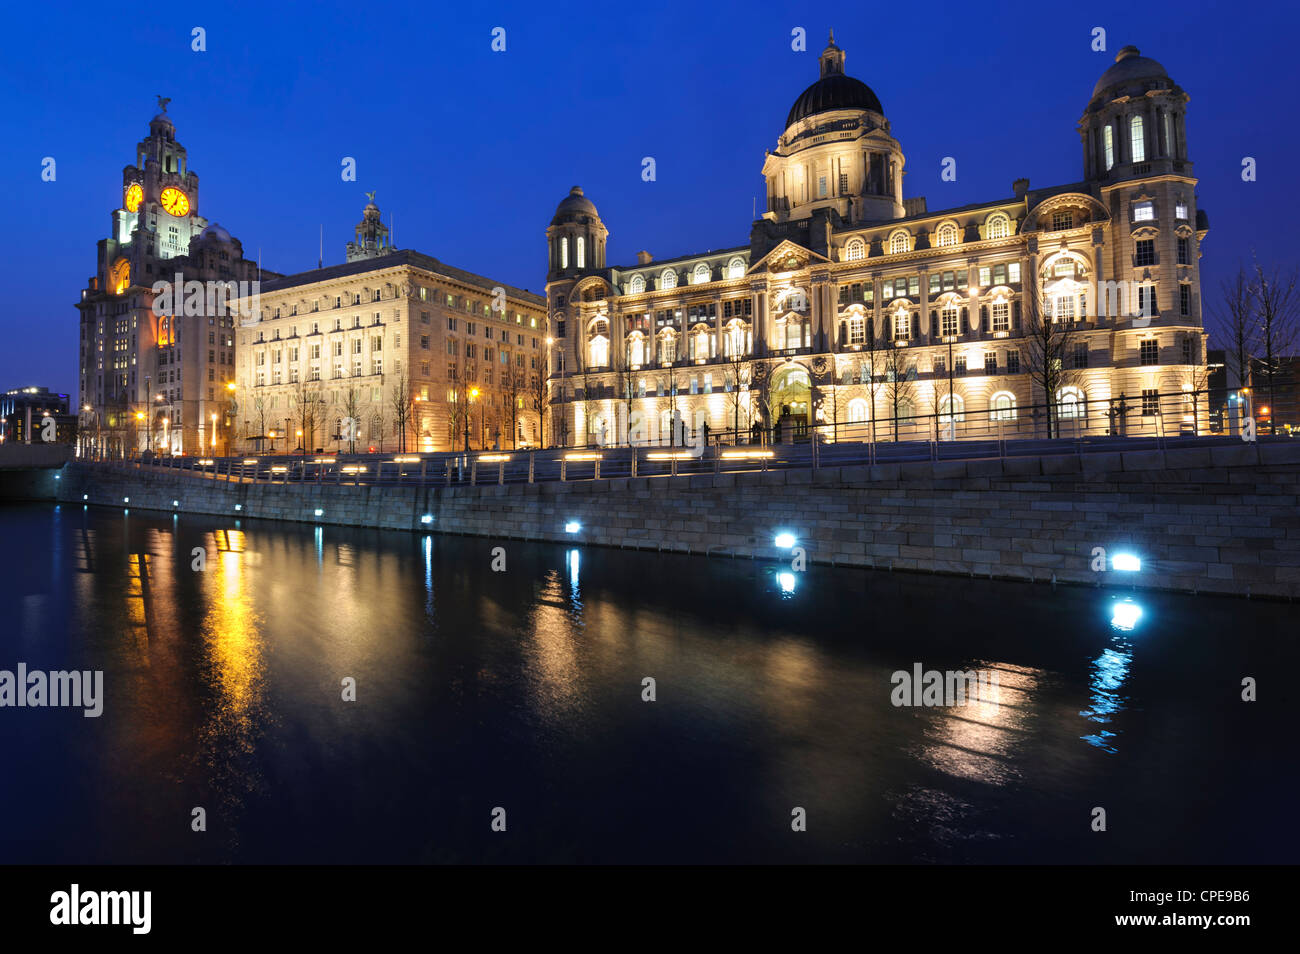 The Three Graces at dusk, Cunard Building, Port of Liverpool Building, Liverpool, Merseyside, England, UK - Stock Image